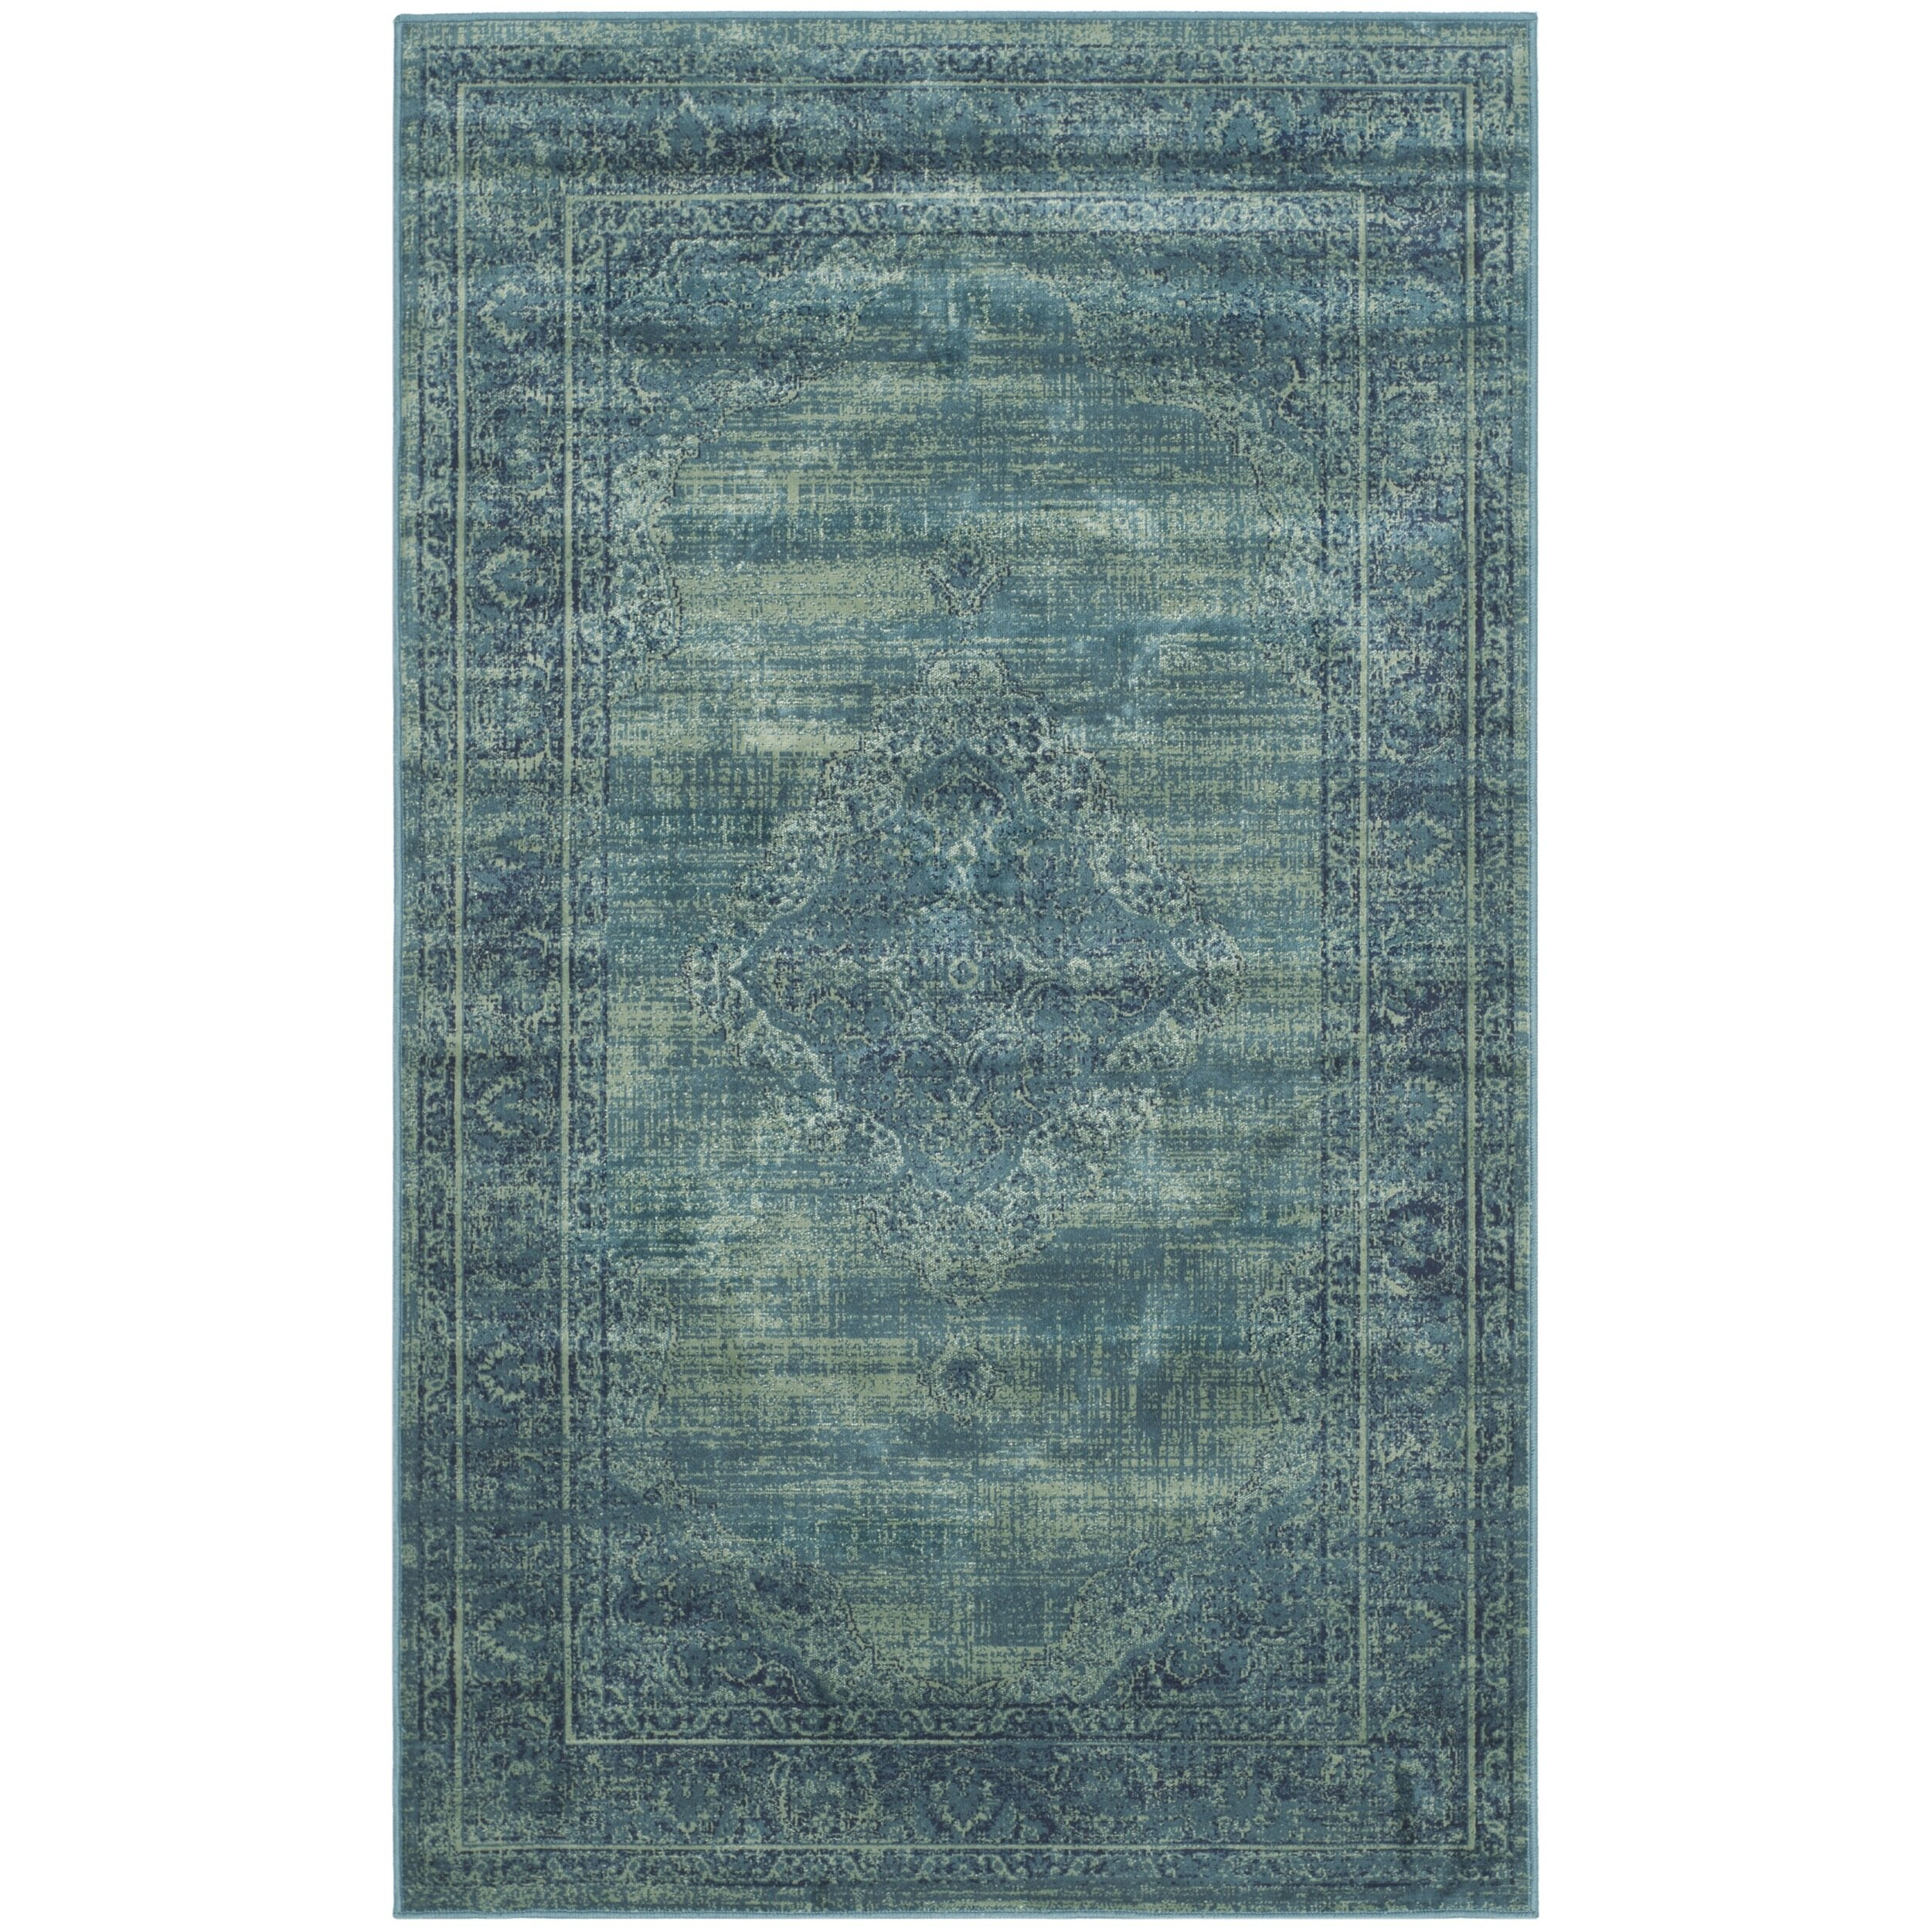 with the turquoise ideas on match fresh decor nice home interior rug area room